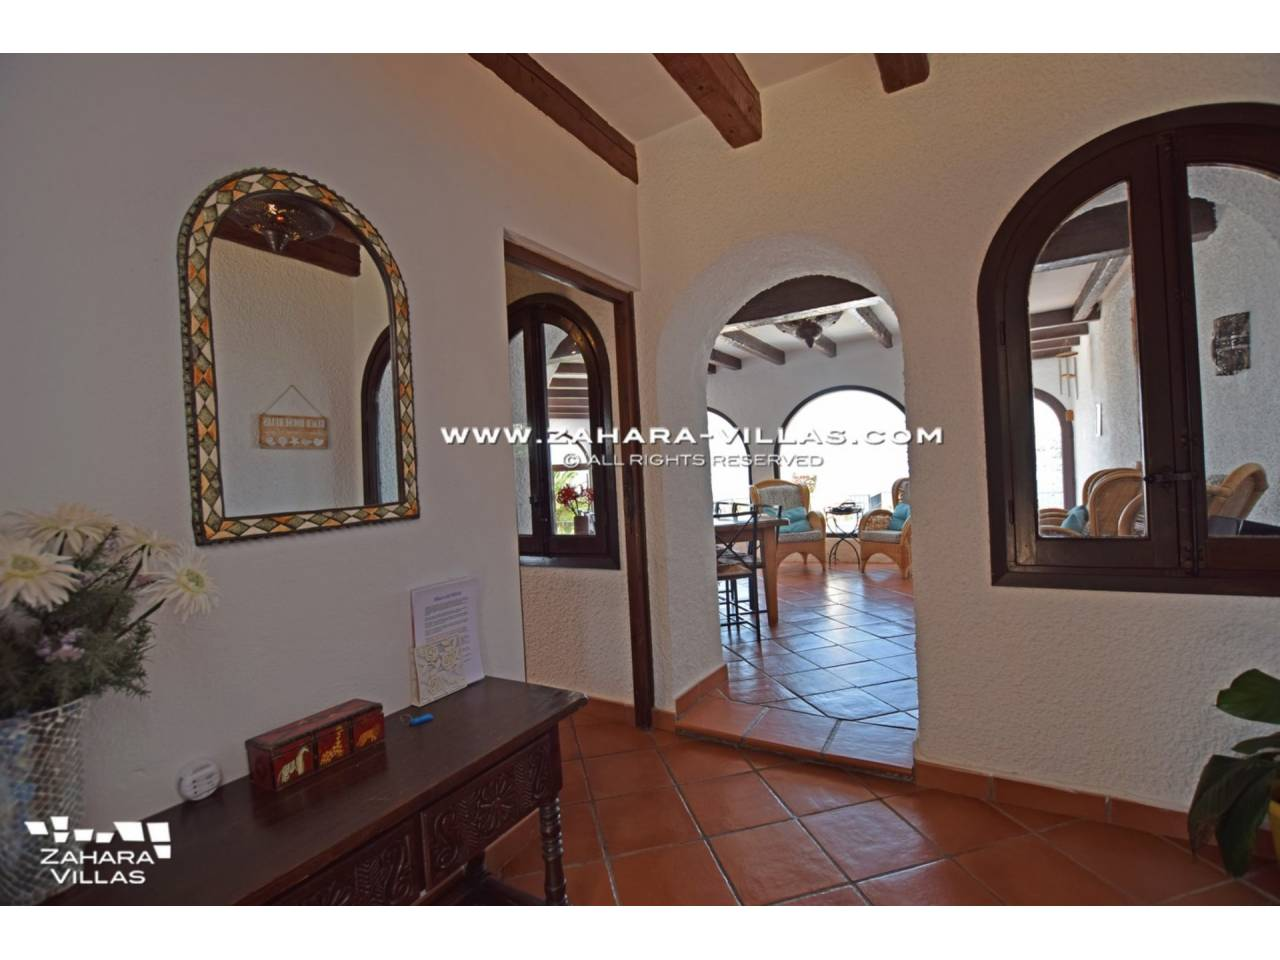 Imagen 24 de Wonderful Villa for sale in Atlanterra-Zahara de los Atunes